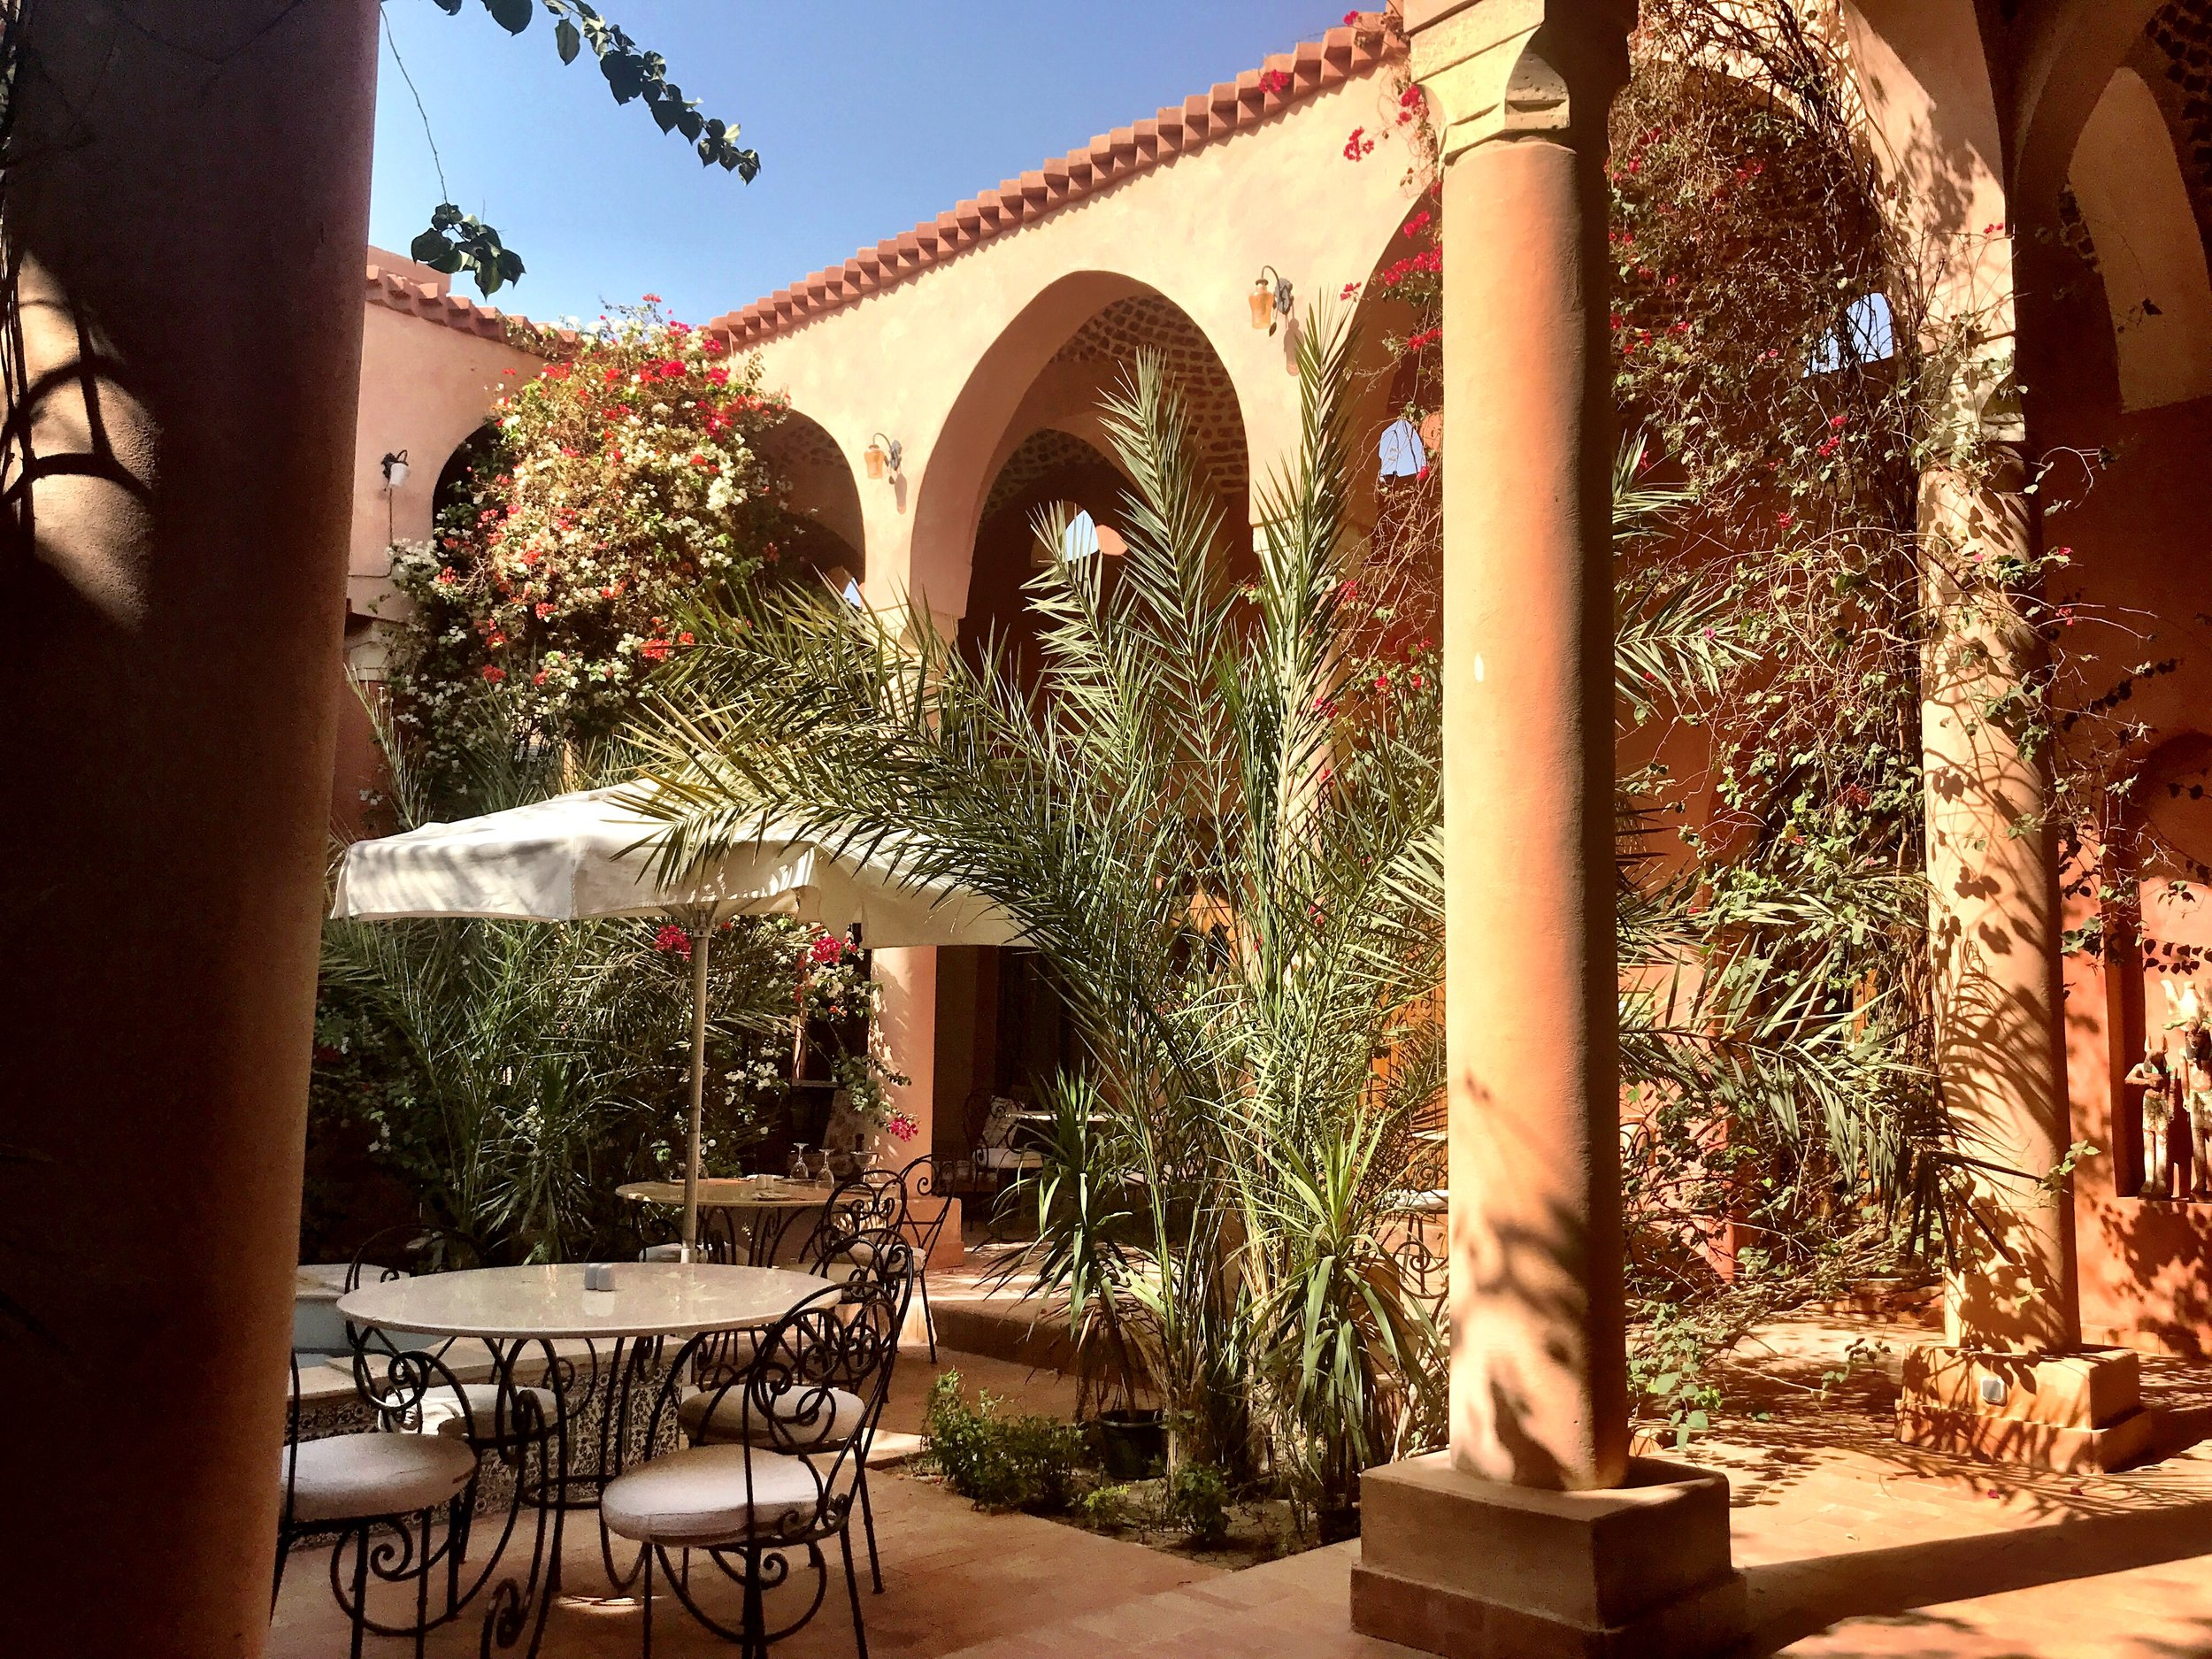 Lush plants, soothing earth tones, arches and cupolas are all part of the relaxing aesthetic at Al Moudira